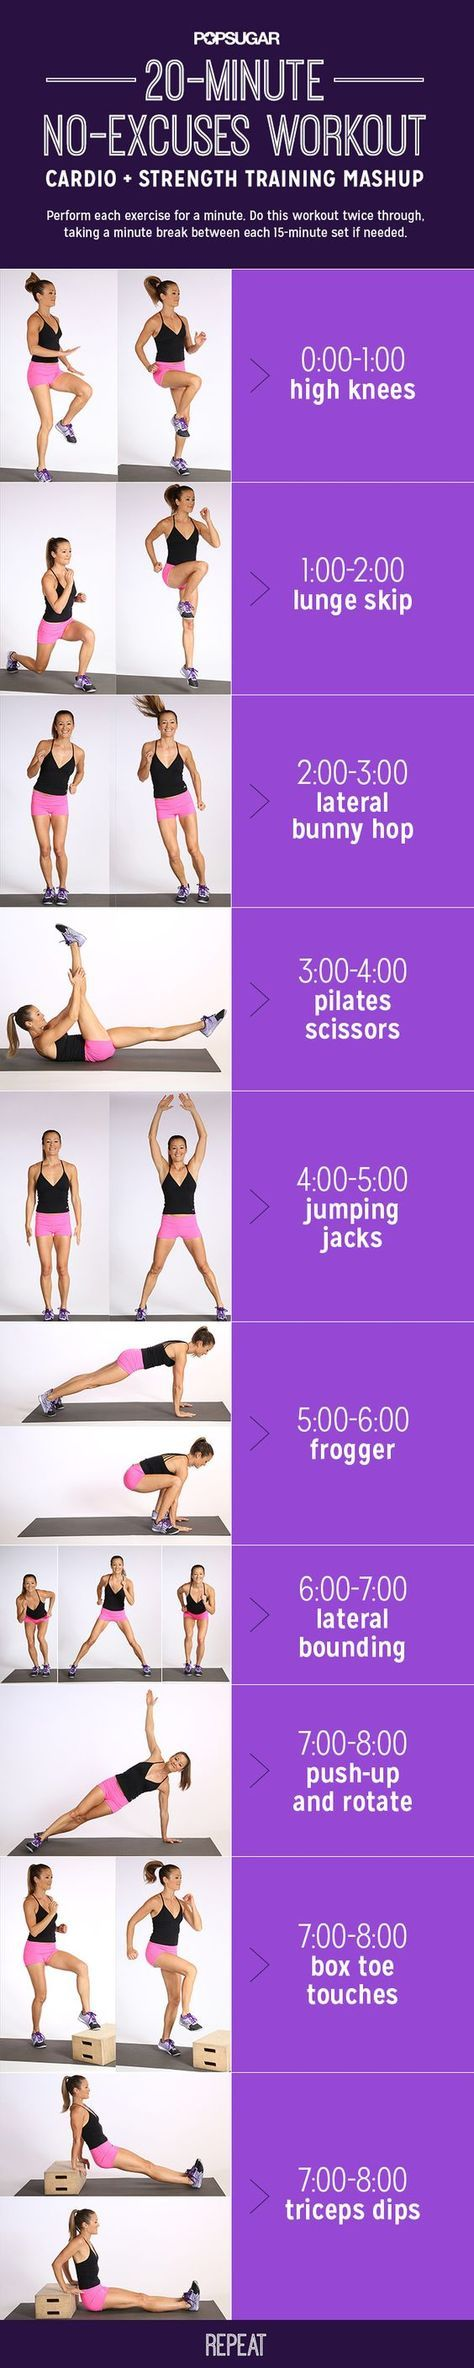 This quick 20-minute workout will get your heart rate up and build some muscle — a metabolism boosting win win!